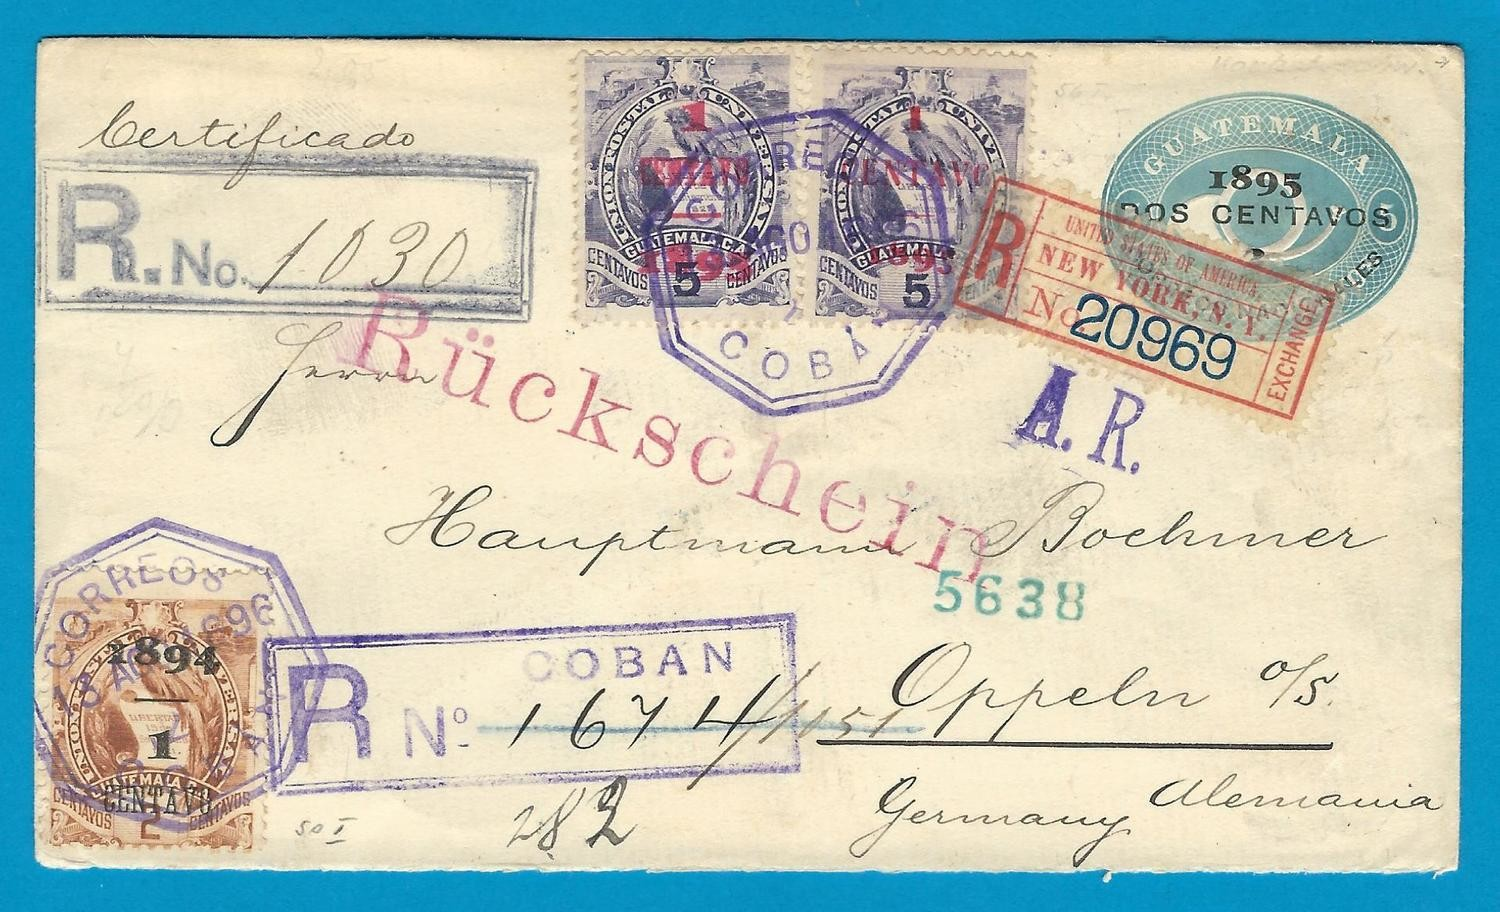 GUATEMALA AR envelope 1896 San Jose to Germany